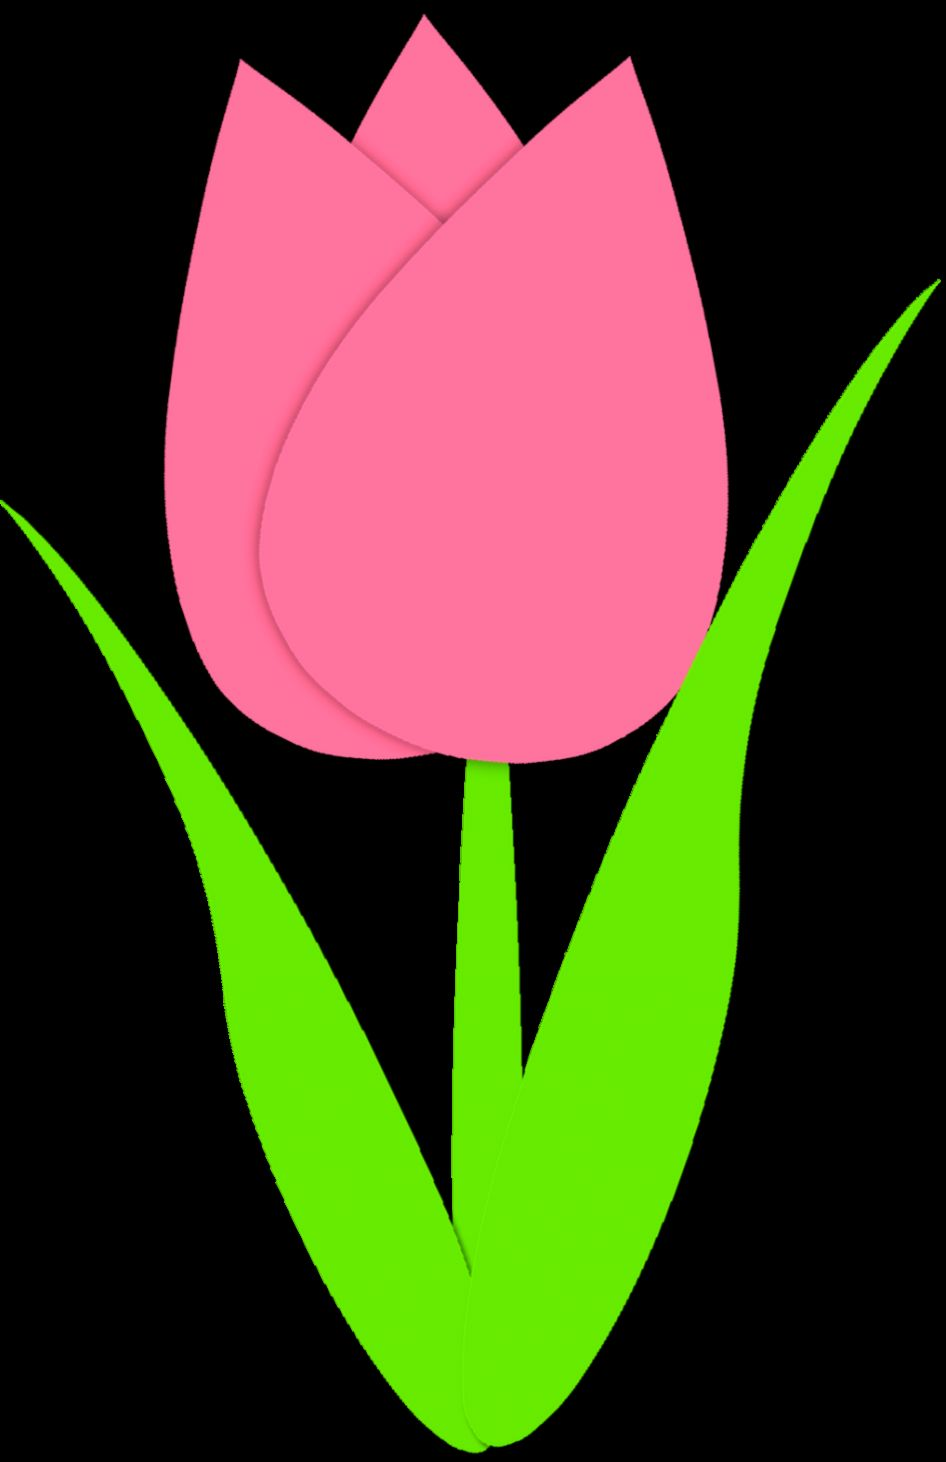 Tulips Clipart   Wallpapers Gallery Tulips Clip Art Border